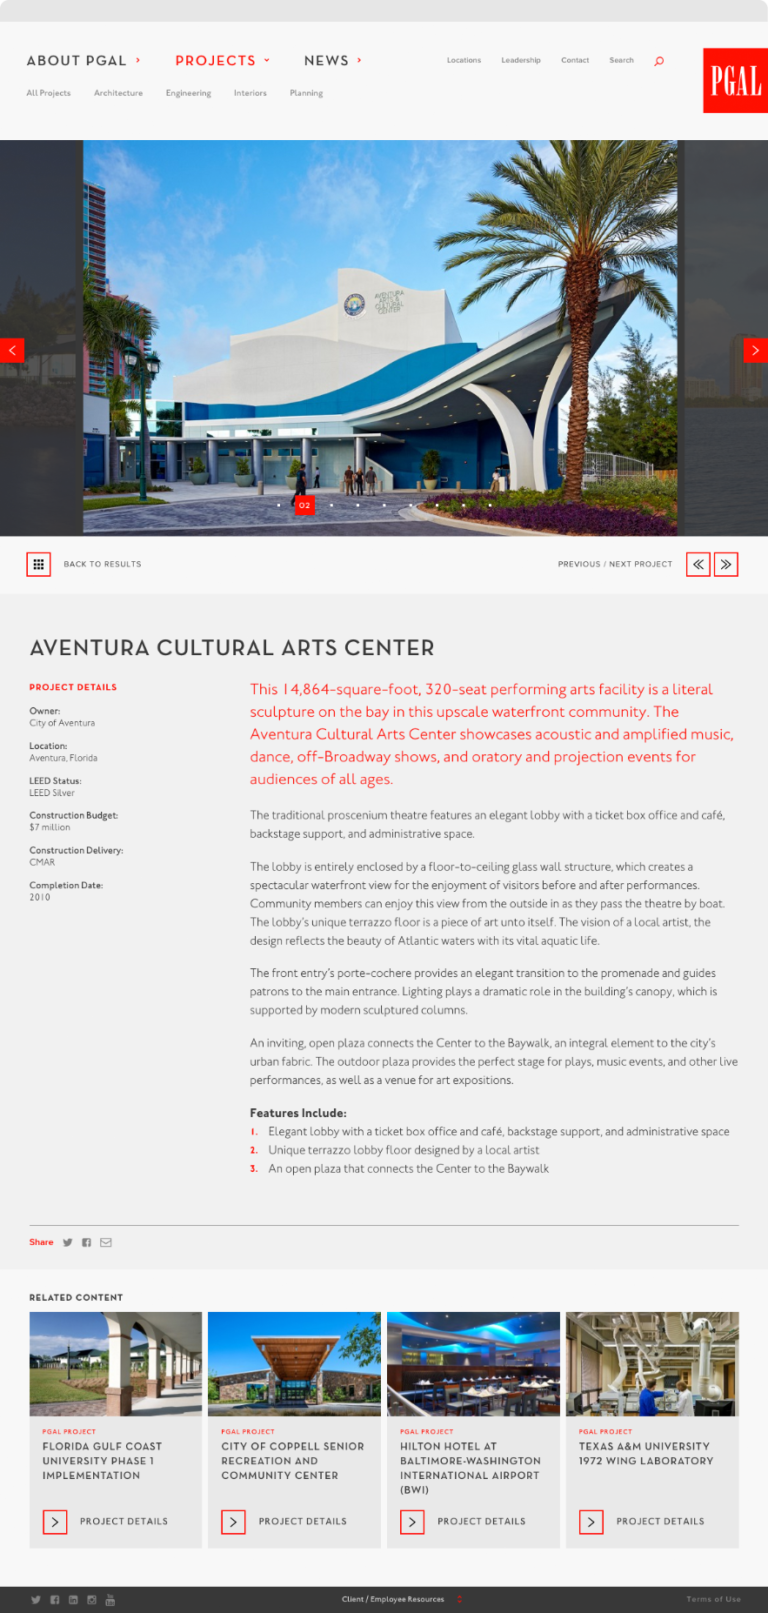 Screenshot showing PGAL's project page for the Aventura Cultural Arts Center